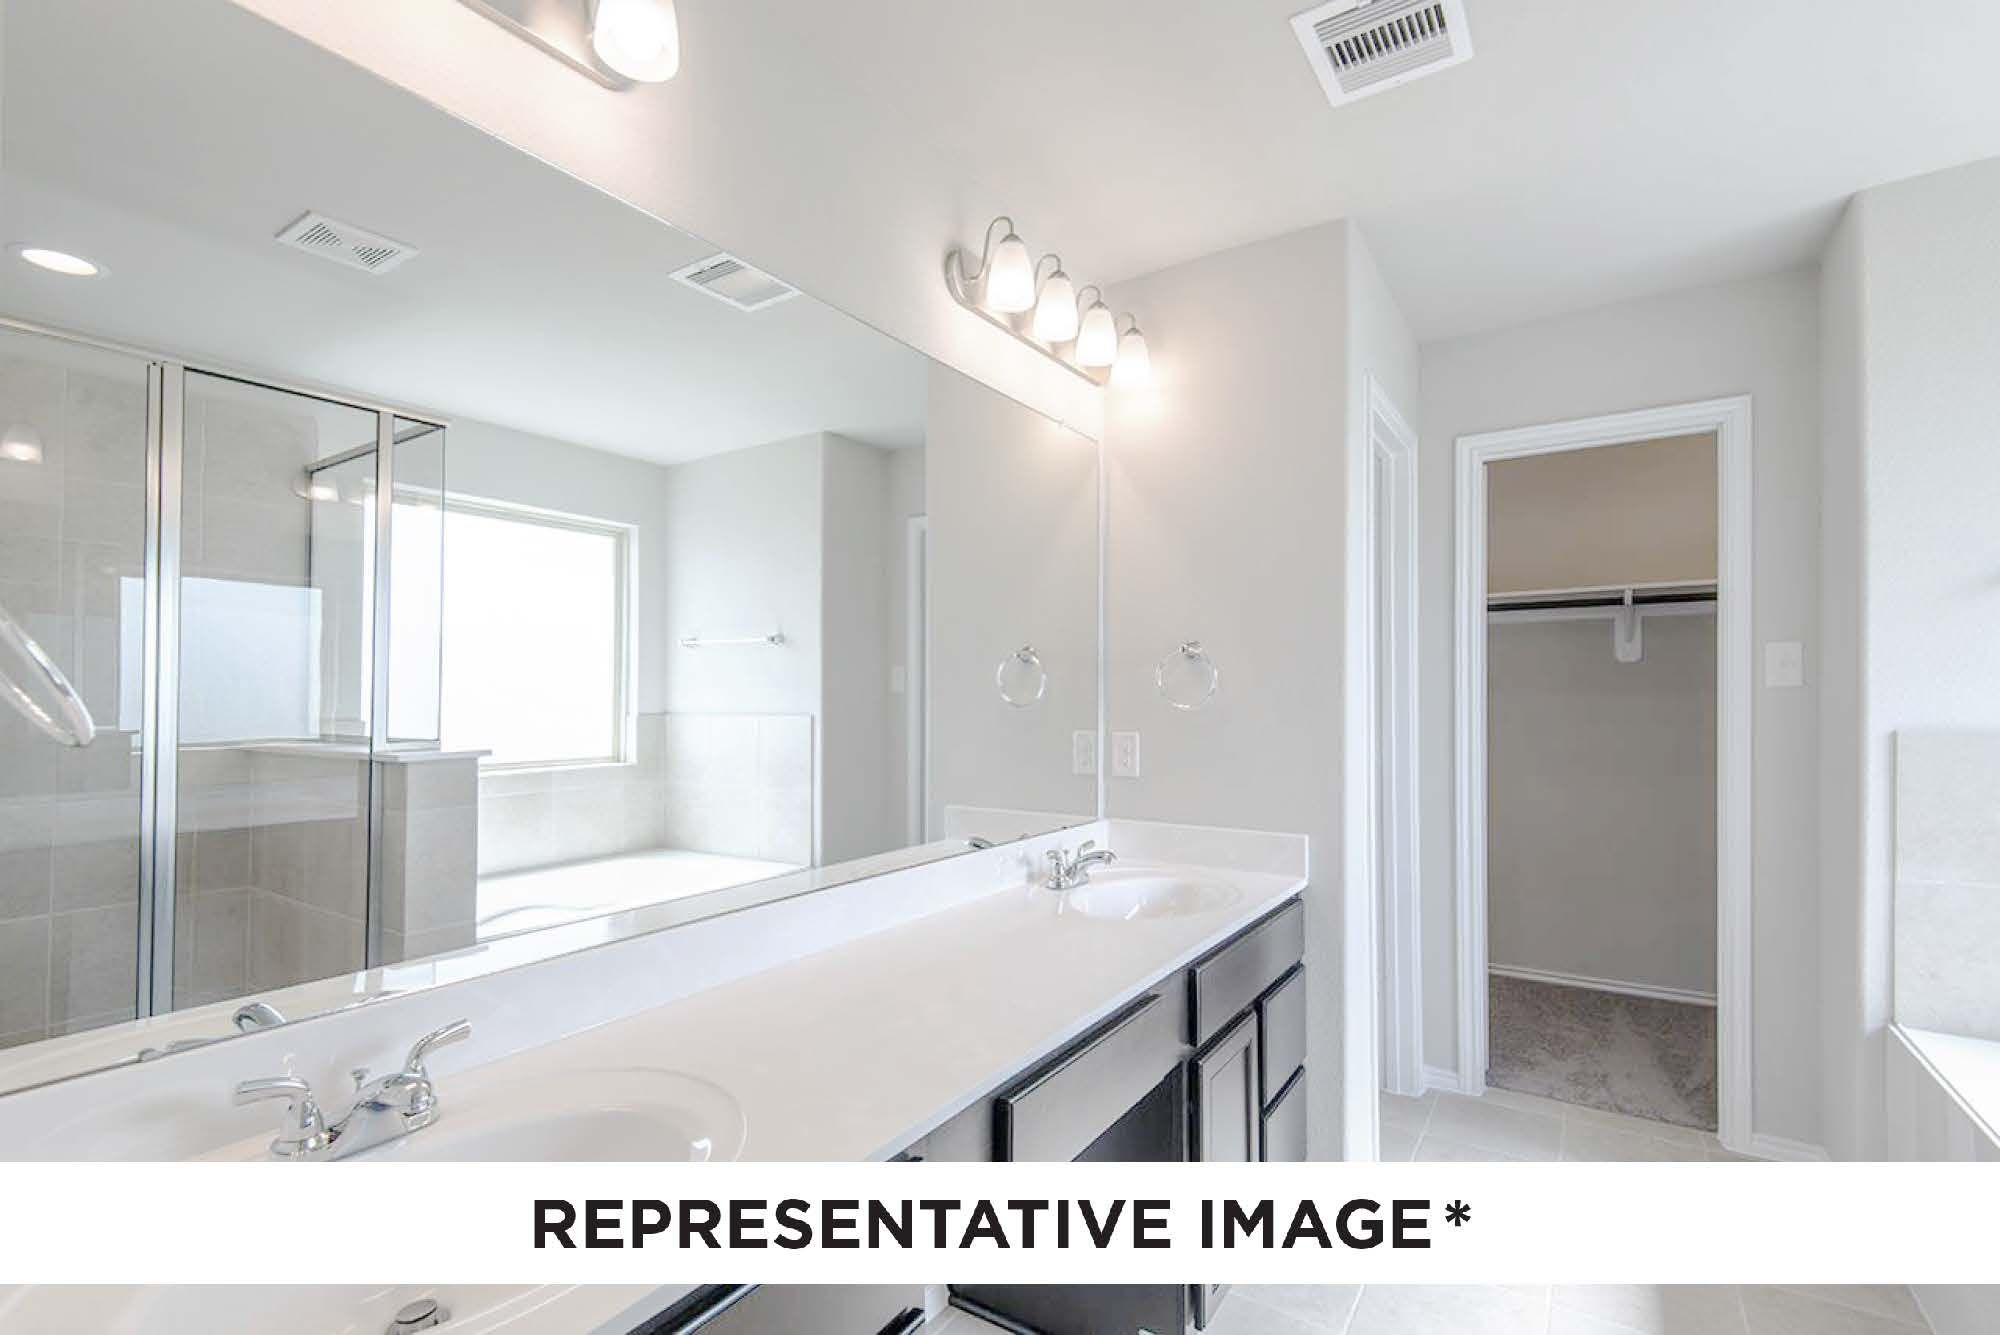 Bathroom featured in the Gladewater By HistoryMaker Homes    in Houston, TX